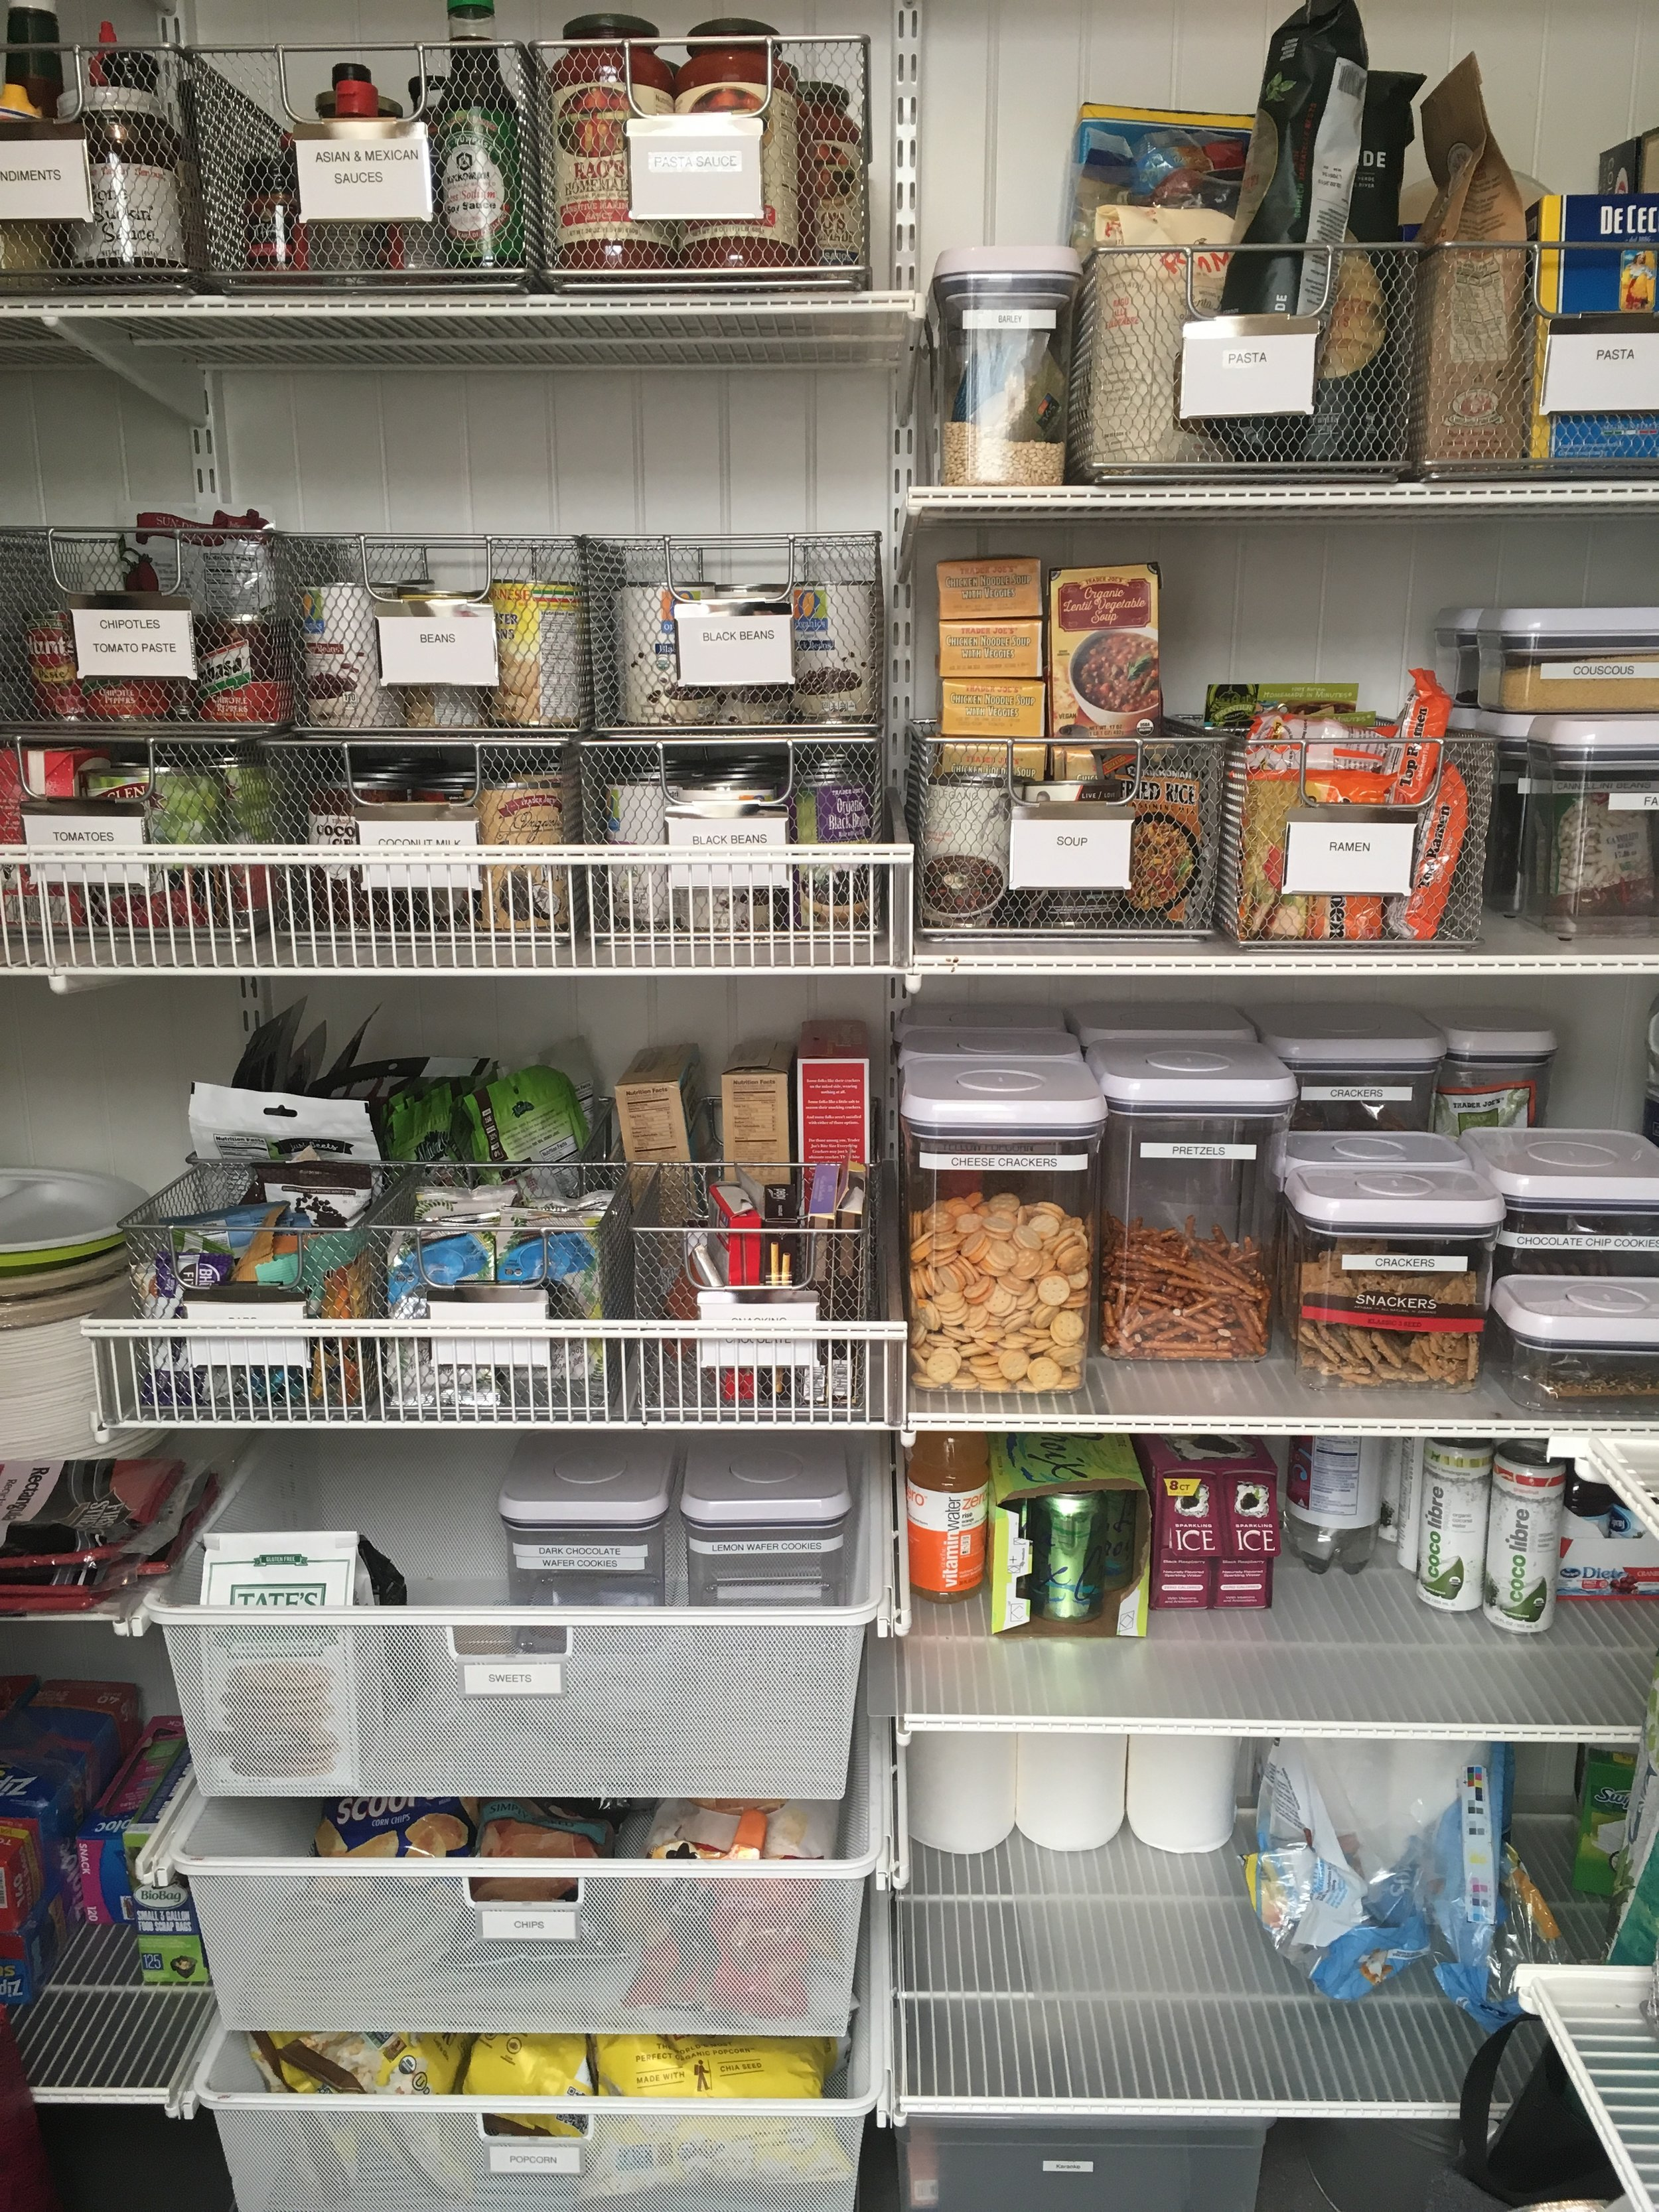 The first pantry I ever organized - nicely labeled and containerized, but still very functional!